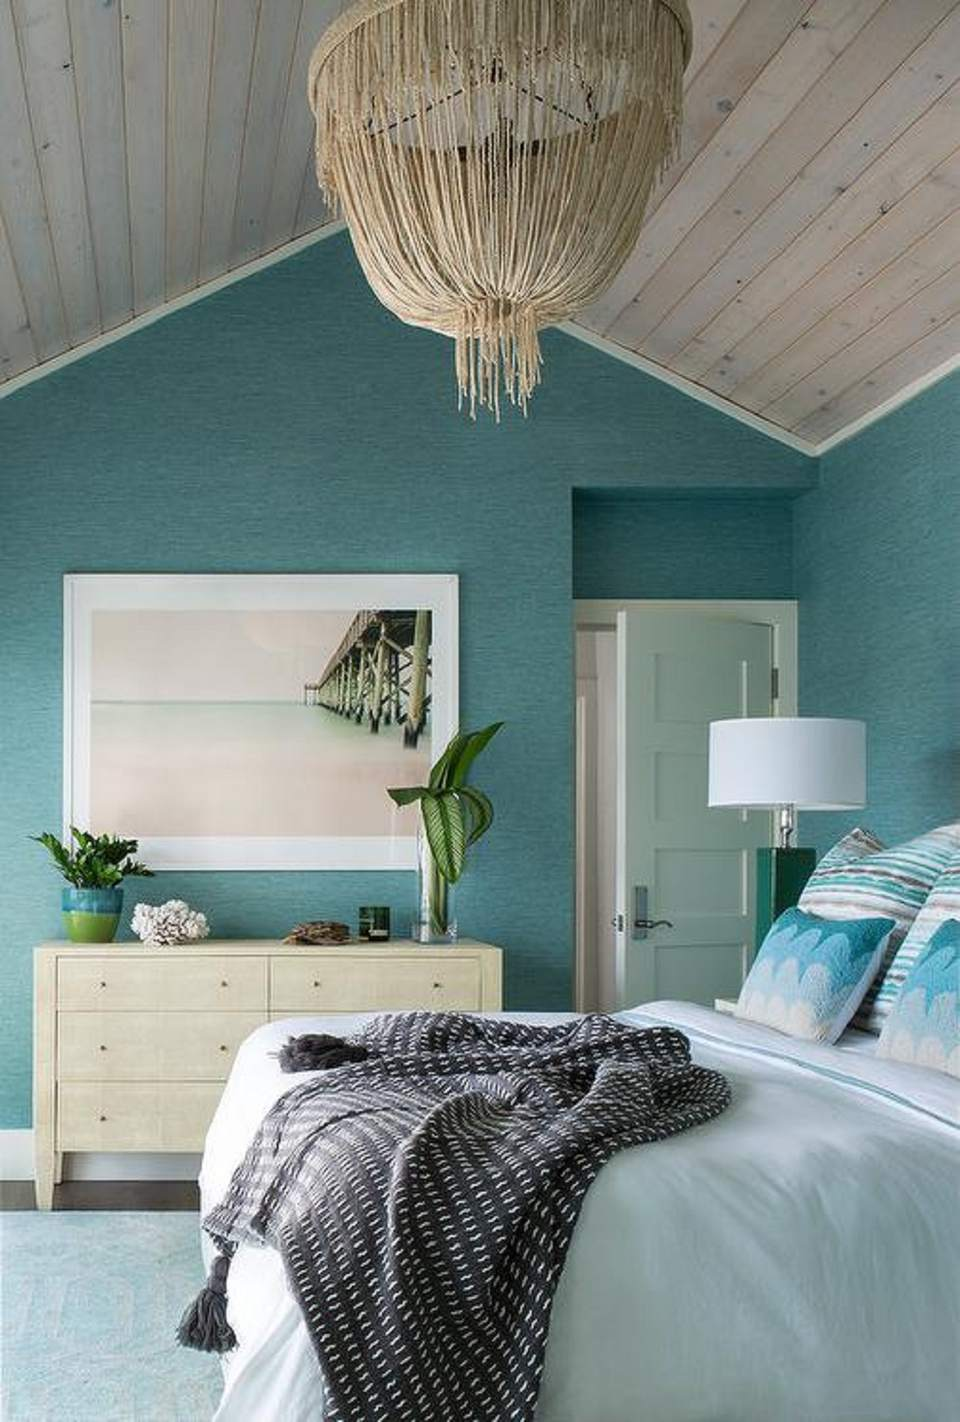 50 gorgeous beach bedroom decor ideas. Black Bedroom Furniture Sets. Home Design Ideas